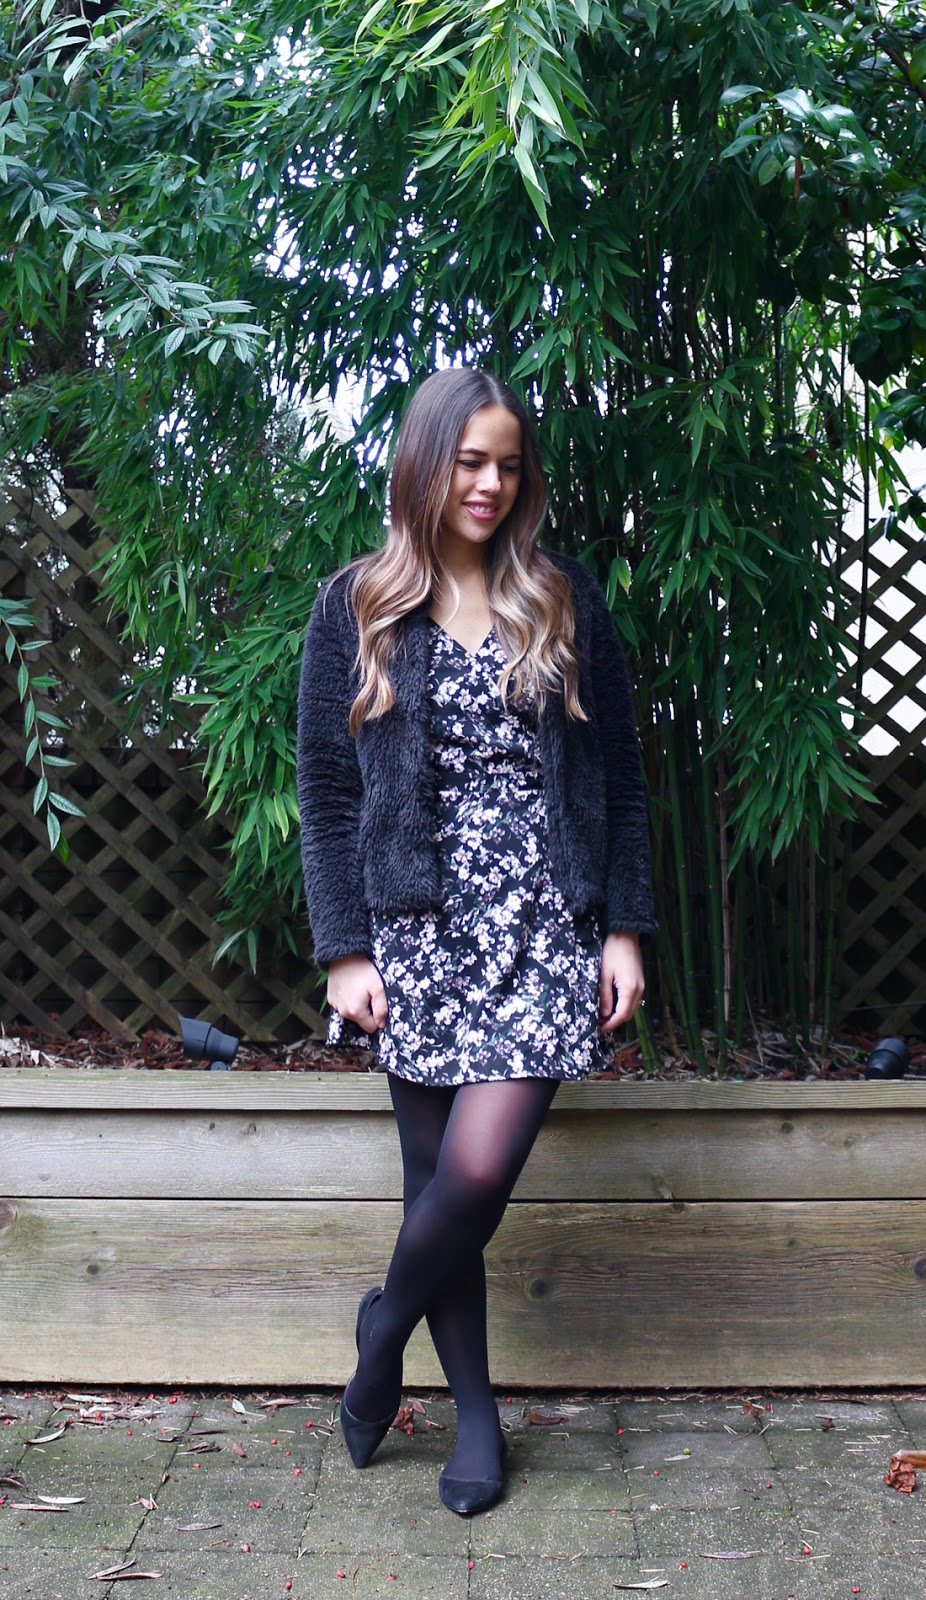 Jules in Flats - Floral Wrap Mini Dress + Faux Fur Bomber Jacket (Business Casual Winter Workwear on a Budget)